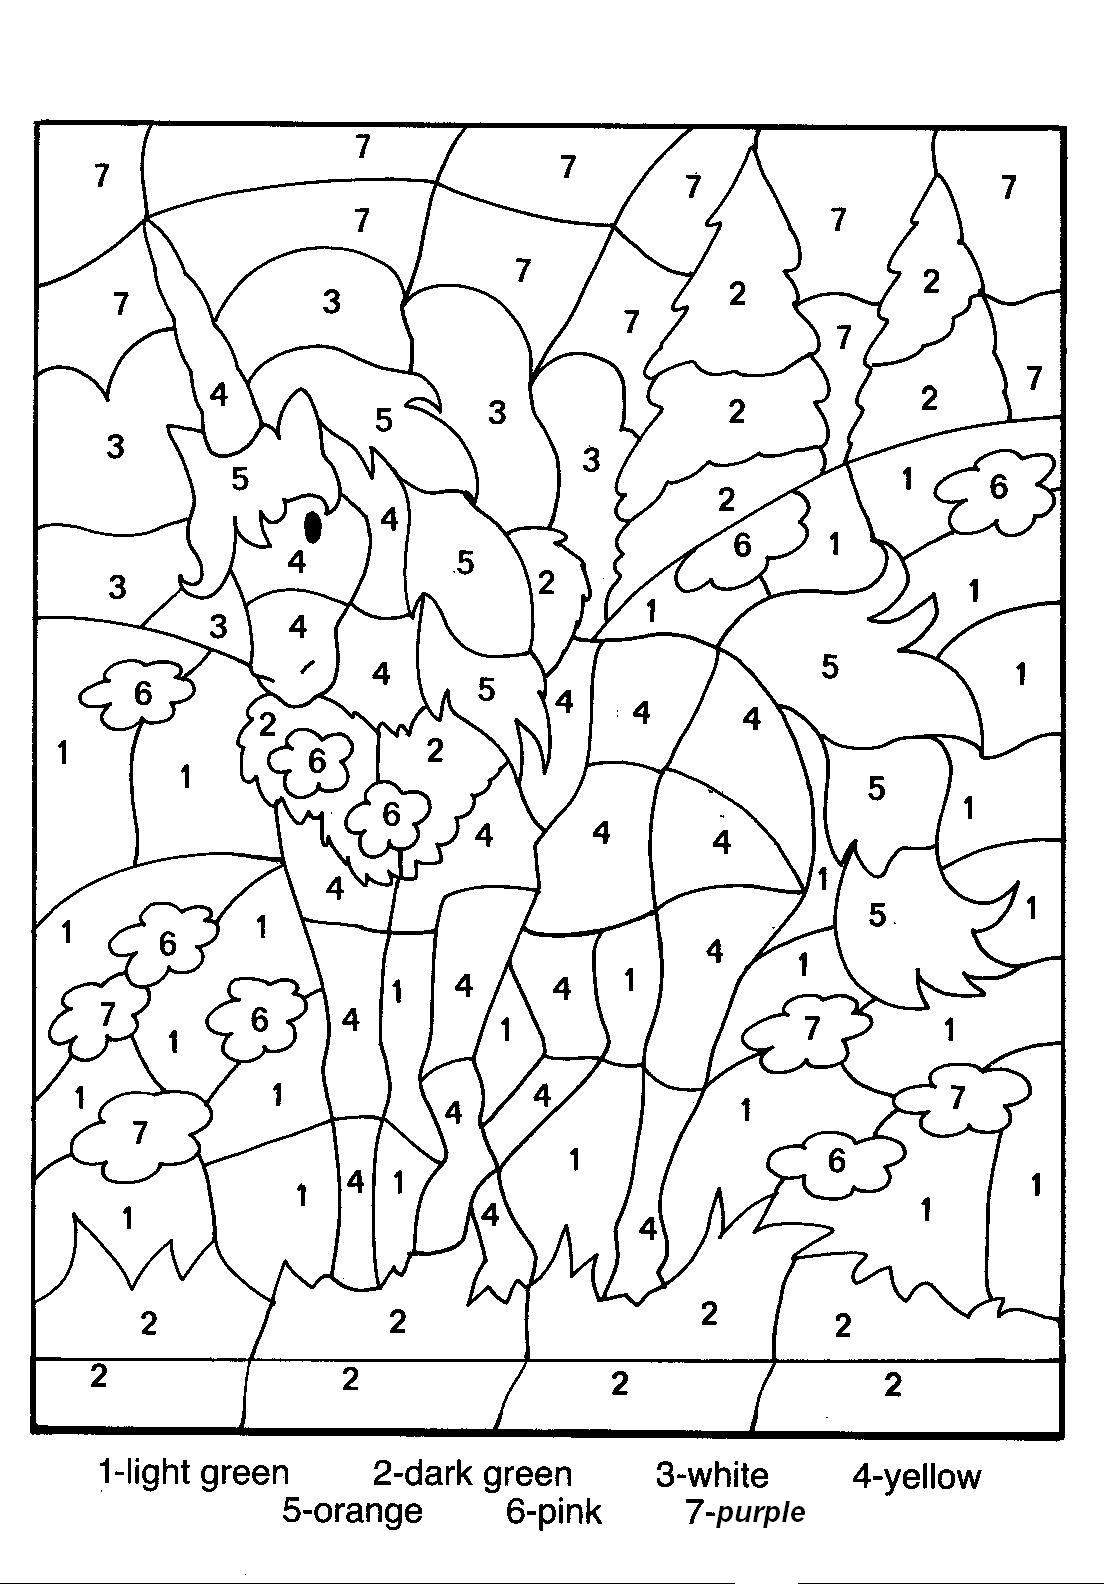 integer coloring activity pages - photo#21